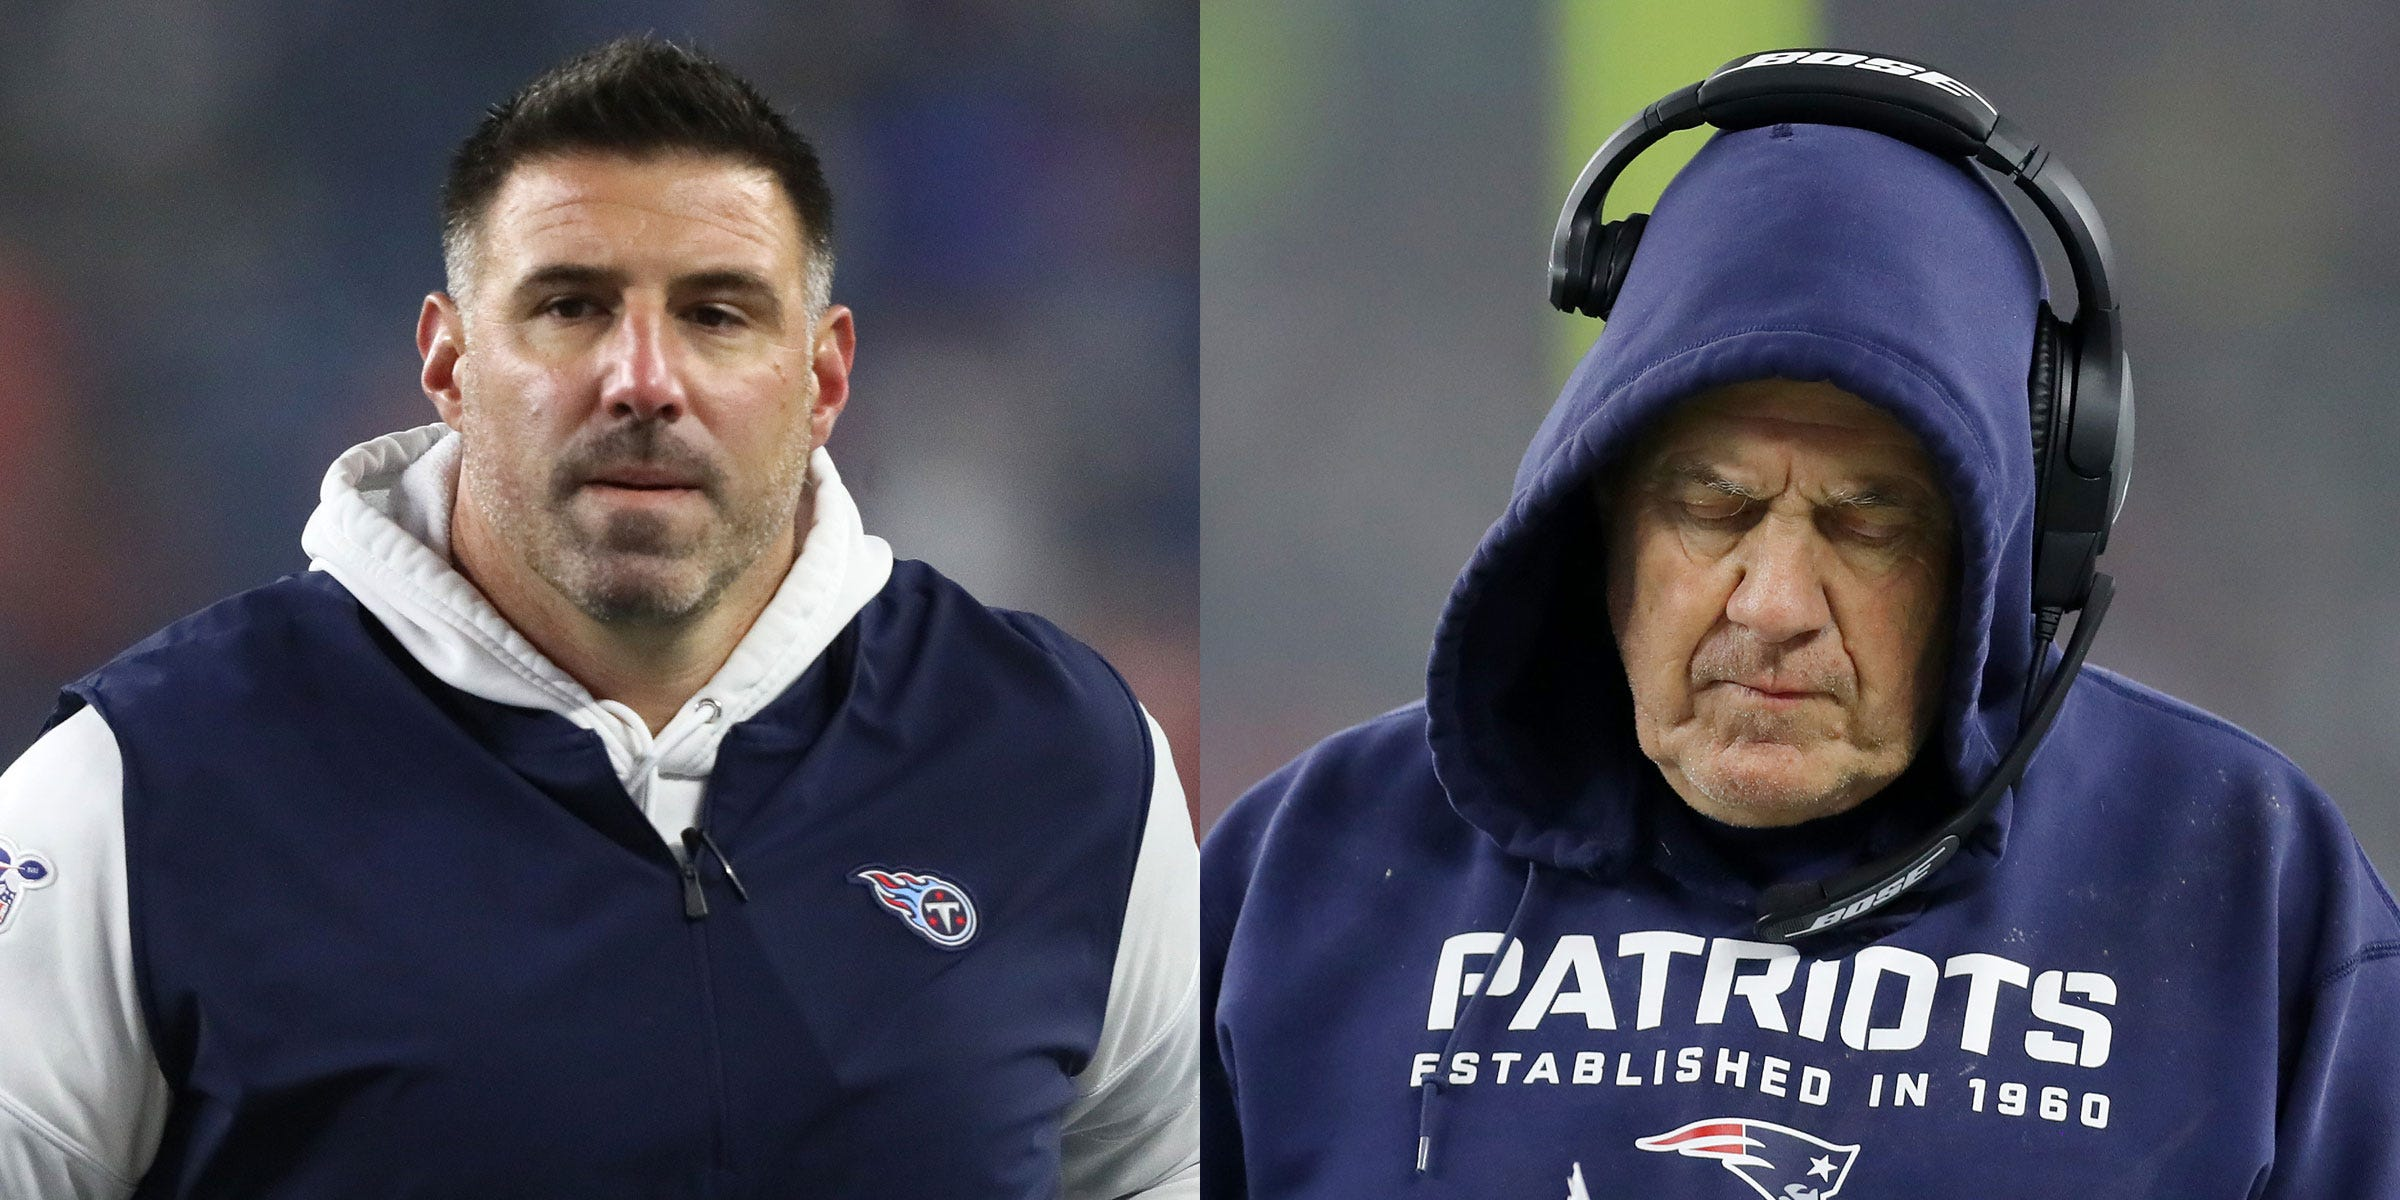 How can an NFL Coach act like a Fractional CFO?